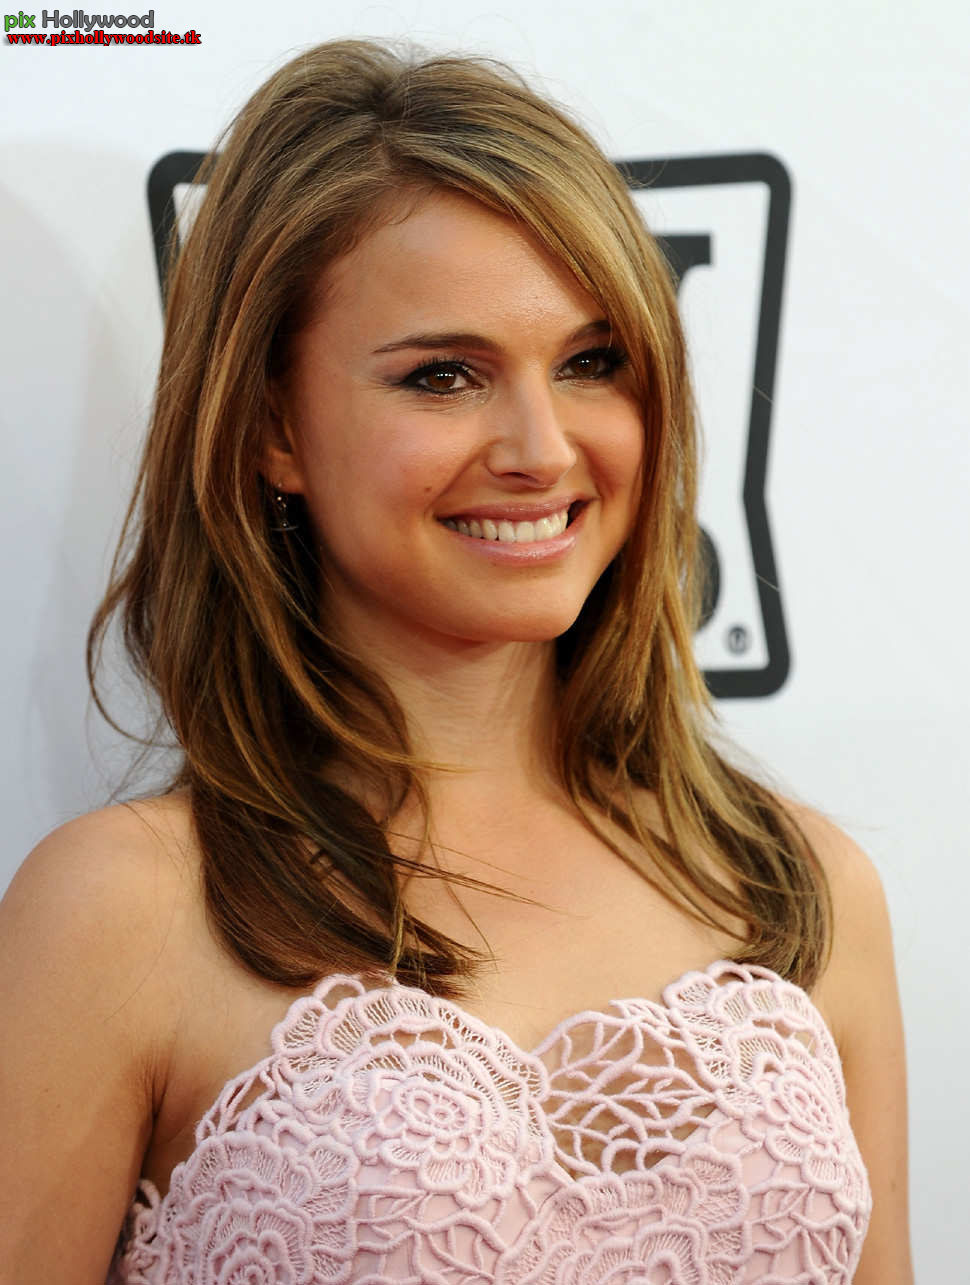 Is a cute Natalie Portman nude photos 2019